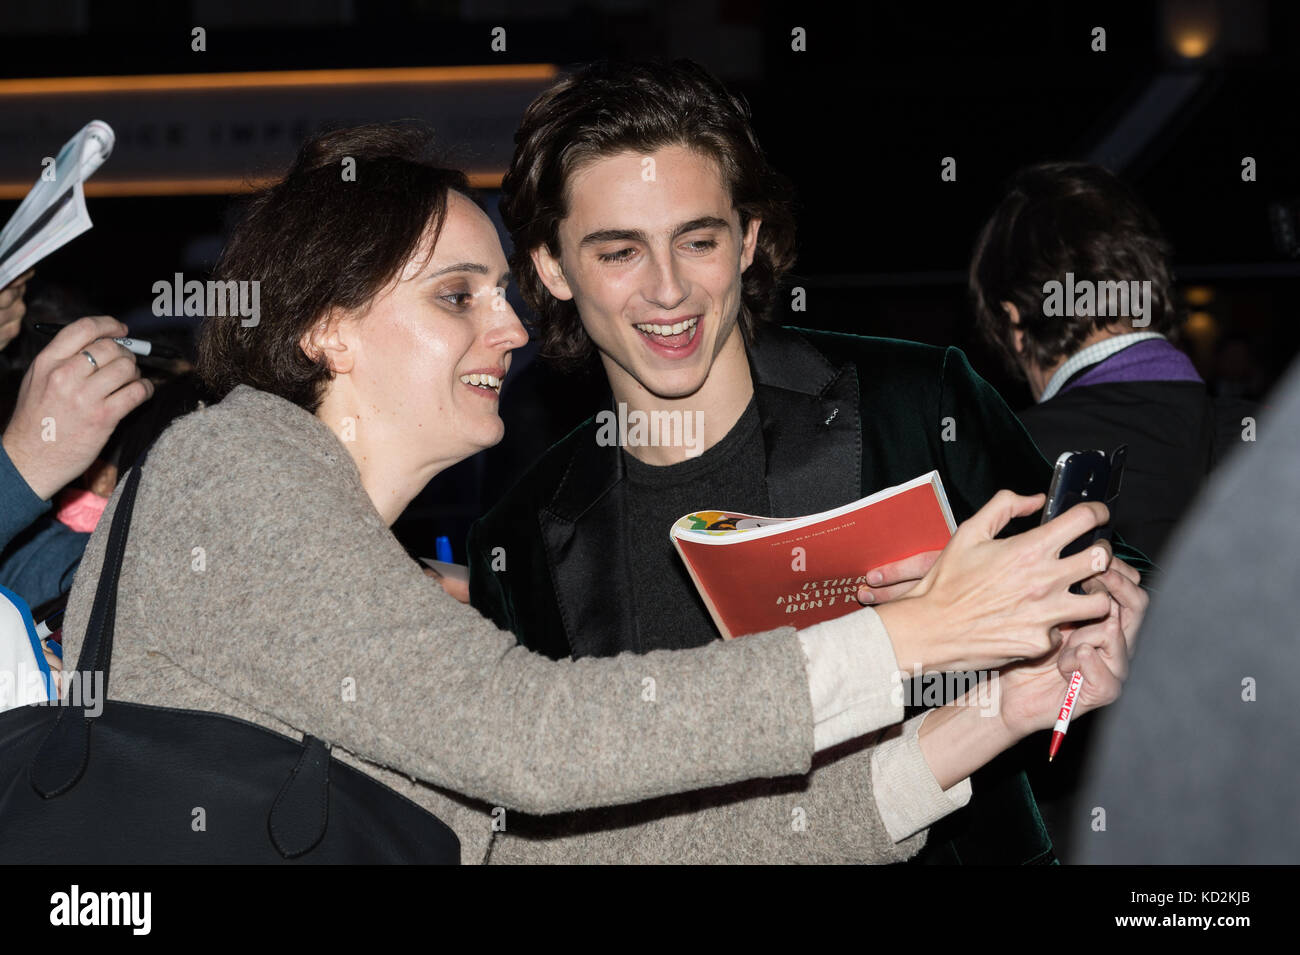 London, UK. 9th Oct, 2017. Timothée Chalamet arrives for the UK film premiere of 'Call Me By Your Name' at Odeon Stock Photo